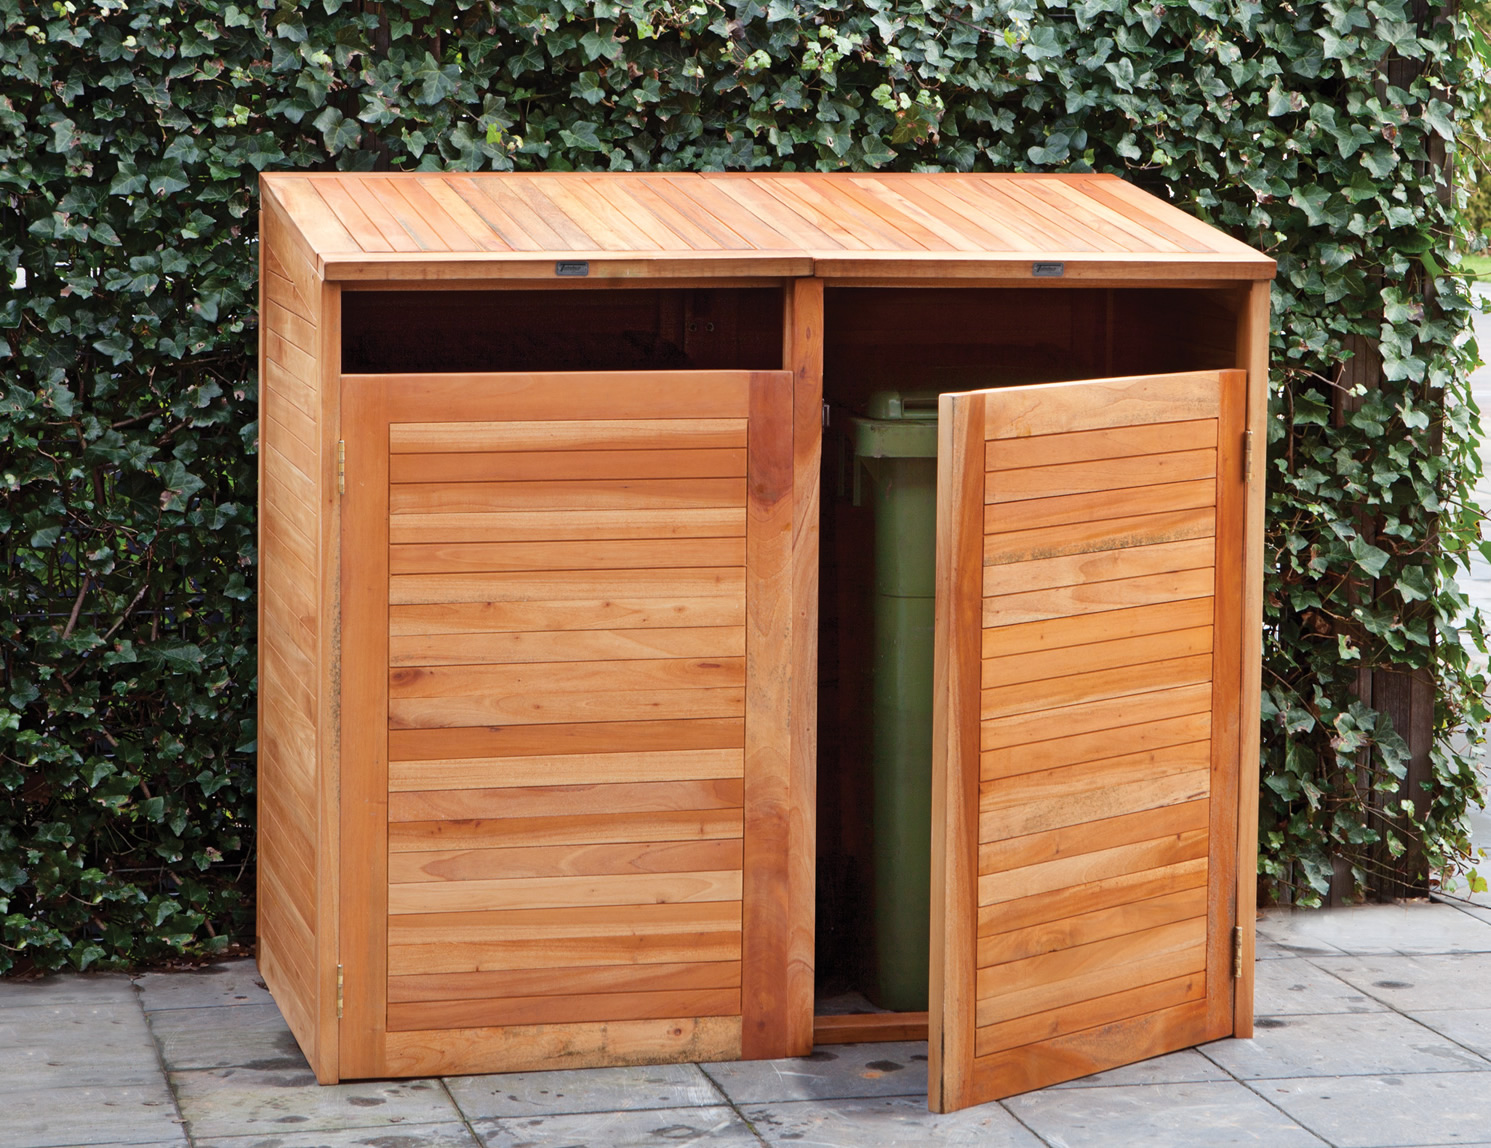 Hardwood double wheelie bin store for Meuble commercial